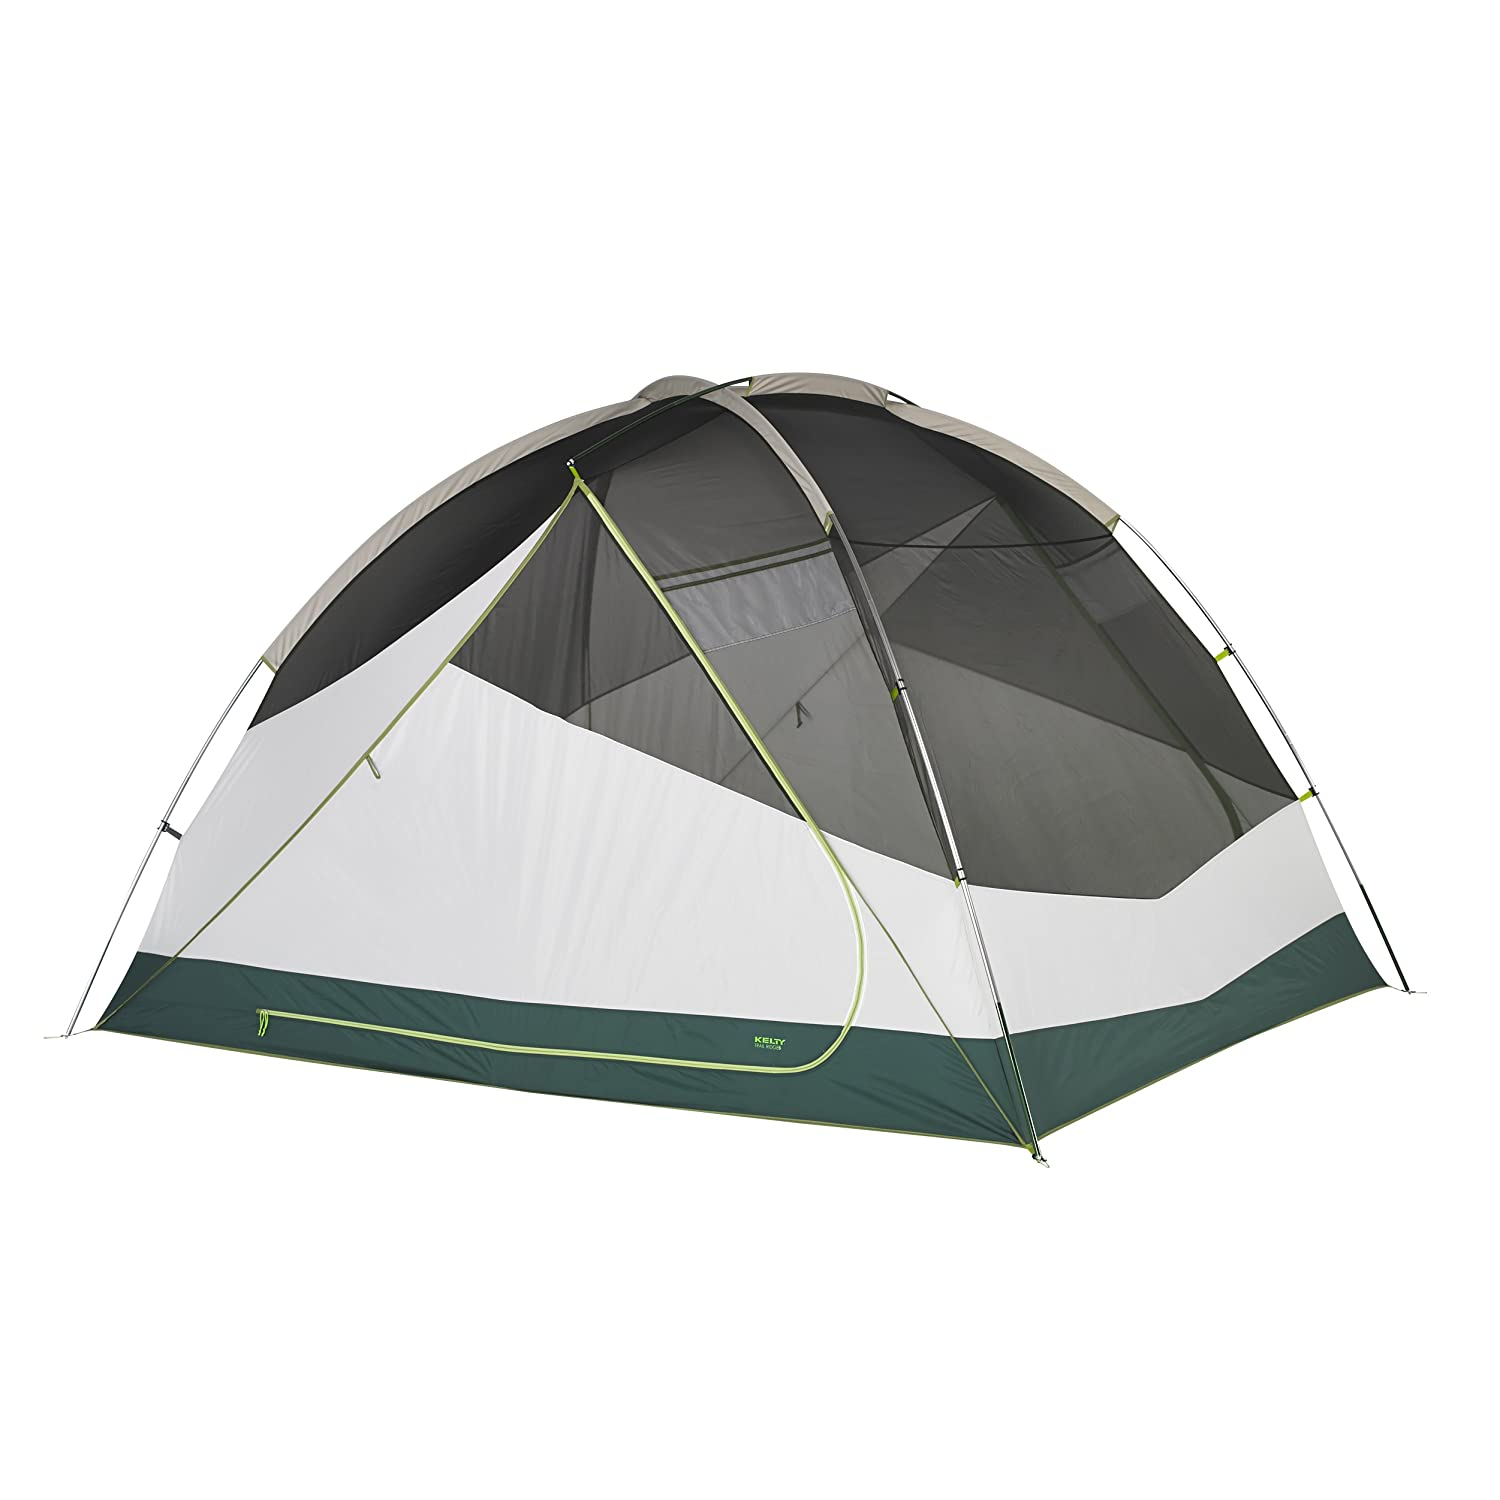 Amazon.com  Kelty Trail Ridge 6 Tent with footprint - 6 Person  Sports u0026 Outdoors  sc 1 st  Amazon.com : footprint tent - memphite.com